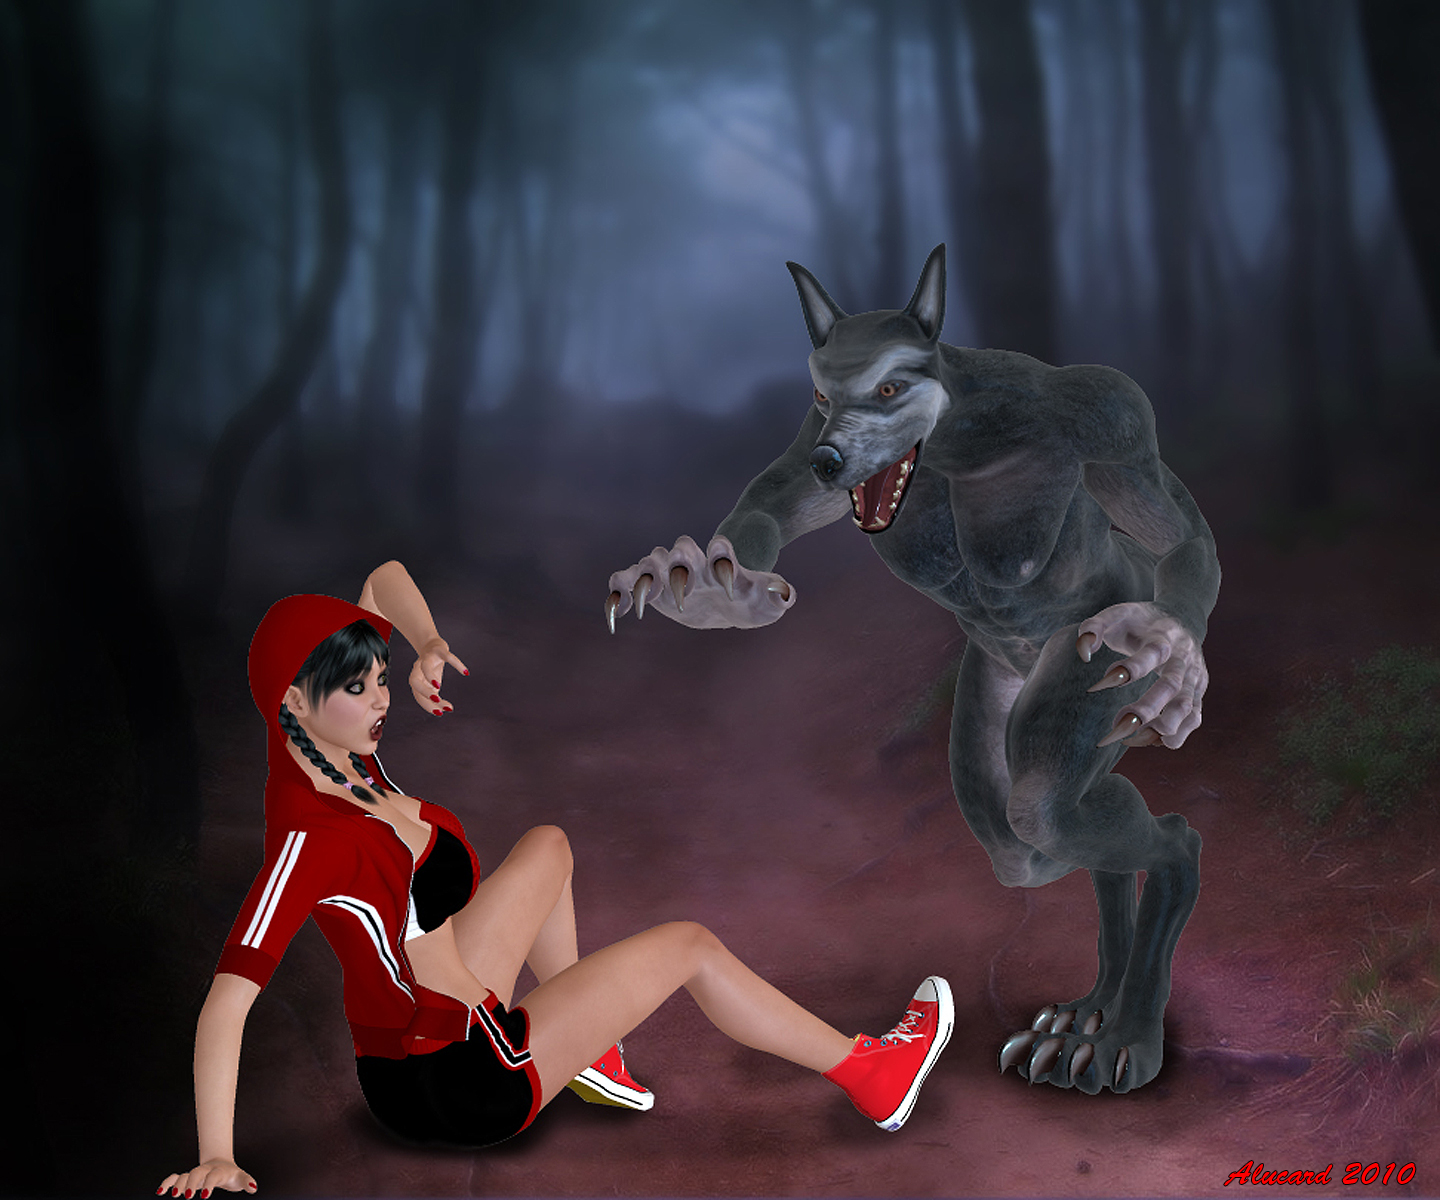 Little red riding hood vore 3d xxx comics